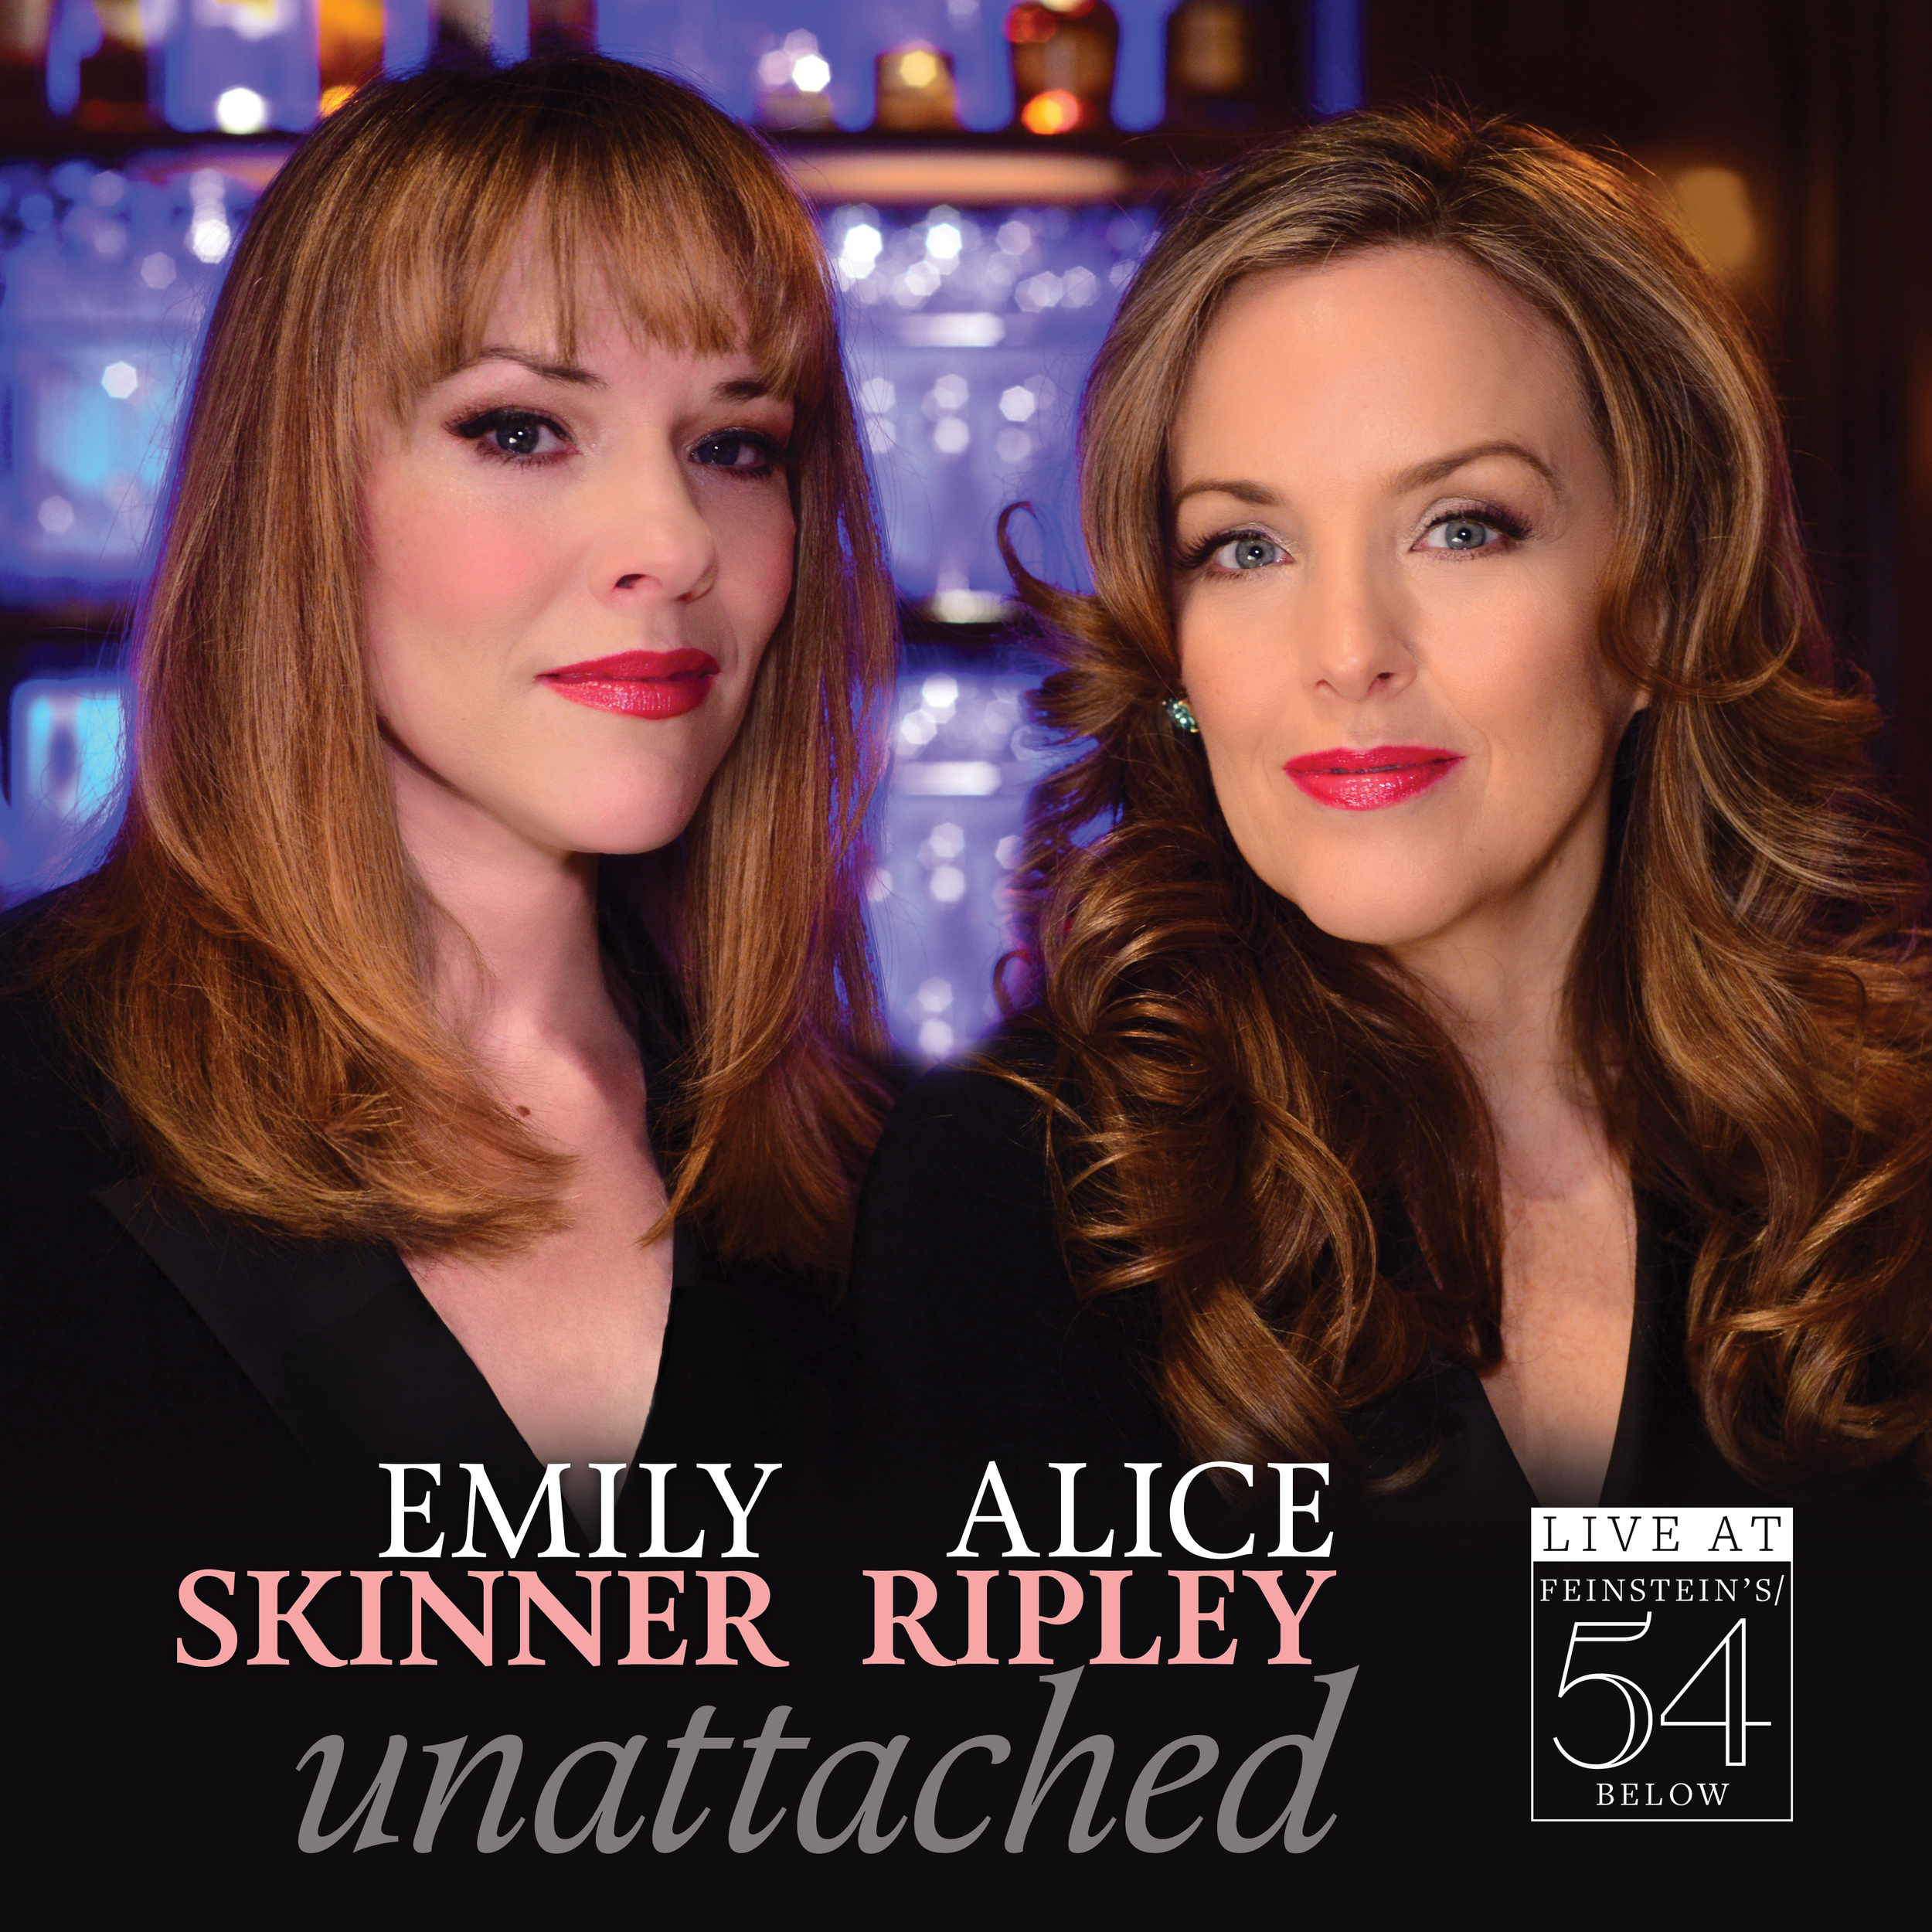 Emily Skinner and Alice Ripley - Unattached: Live at Feinstein's/54 Below